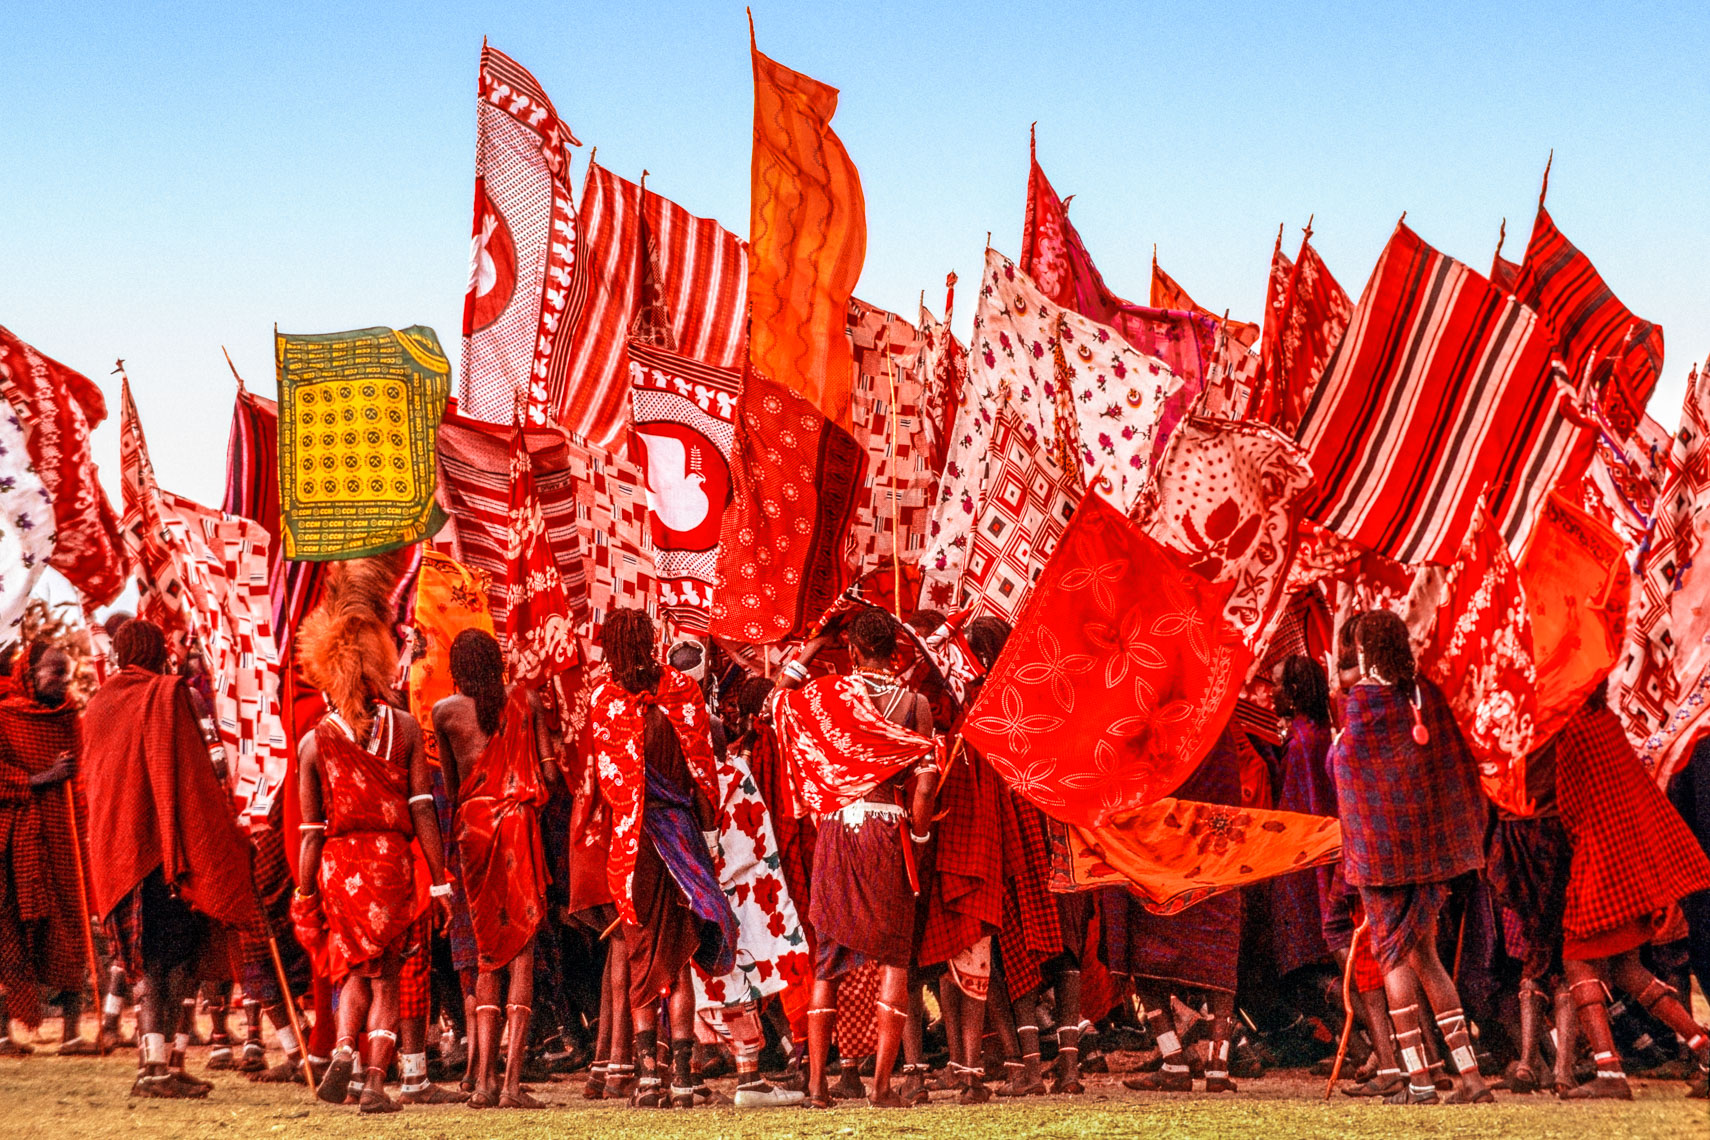 Salei Maasai Warriors Bearing Flags, Tanzania